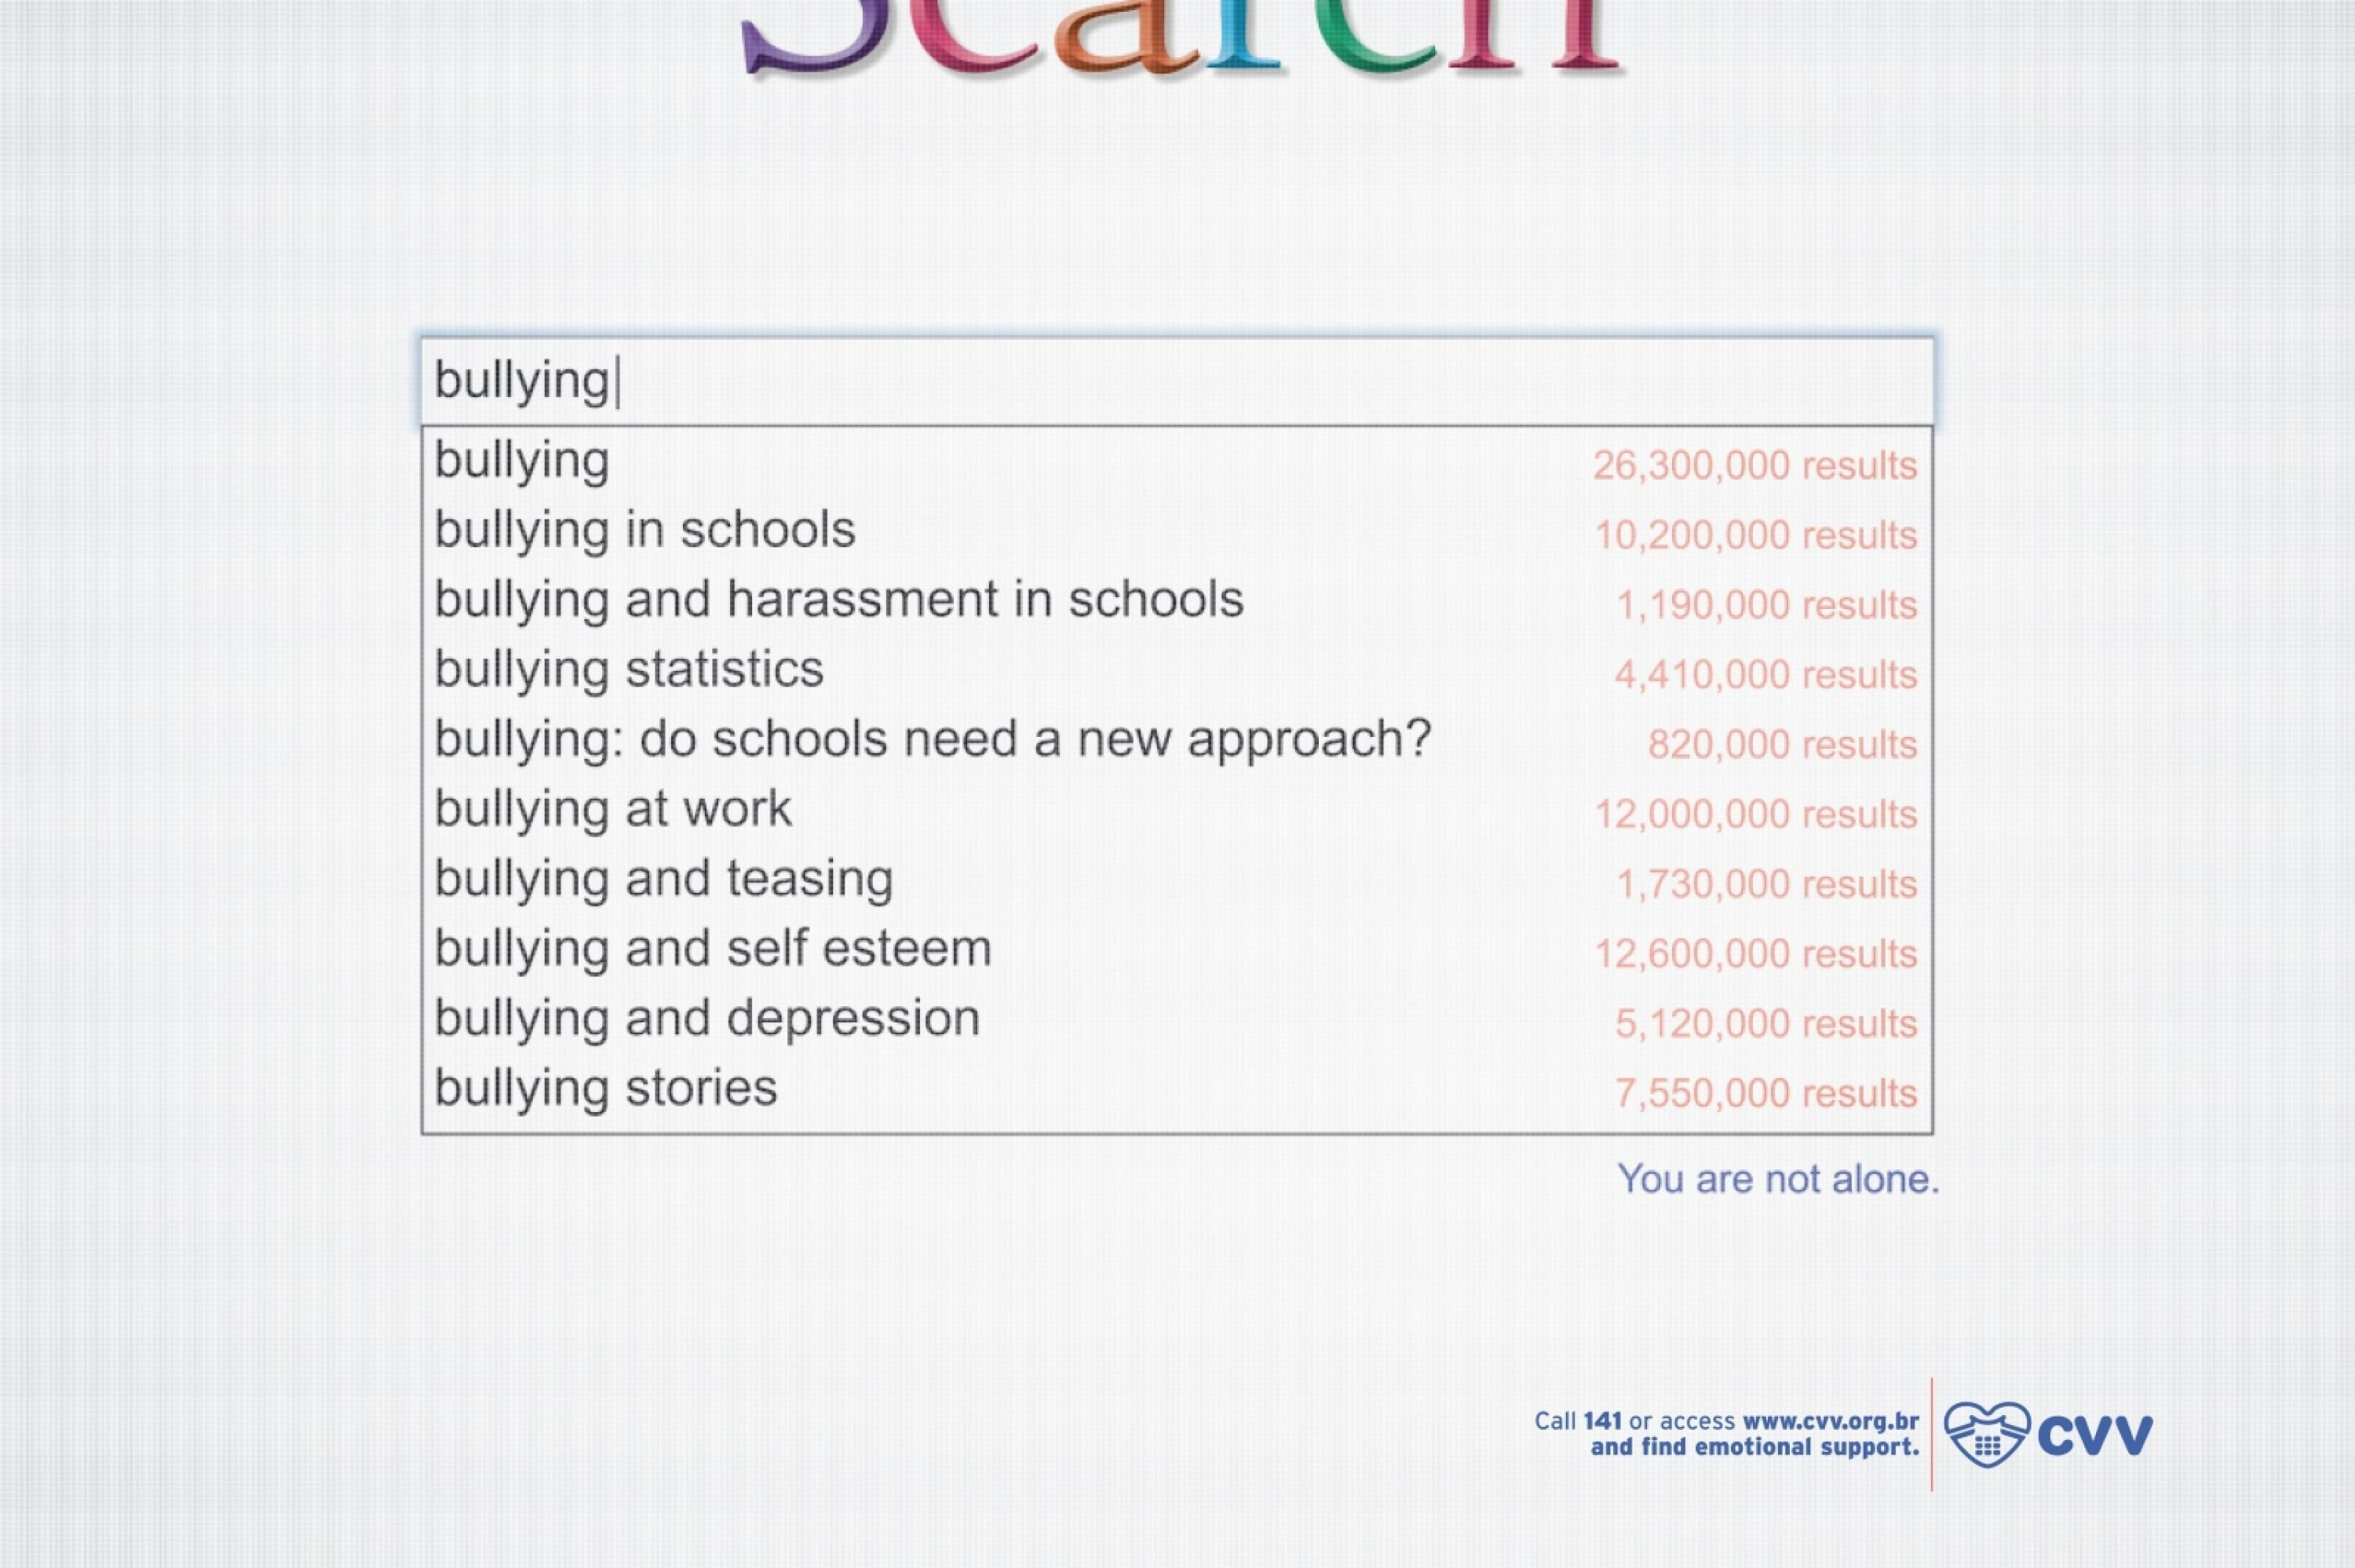 alcoholism and bullying Bullying essayshave you ever bullied or been bullied if you have bullied or been bullied then you should know how bullying feels like bullying is very negative and creates major problems for our society.